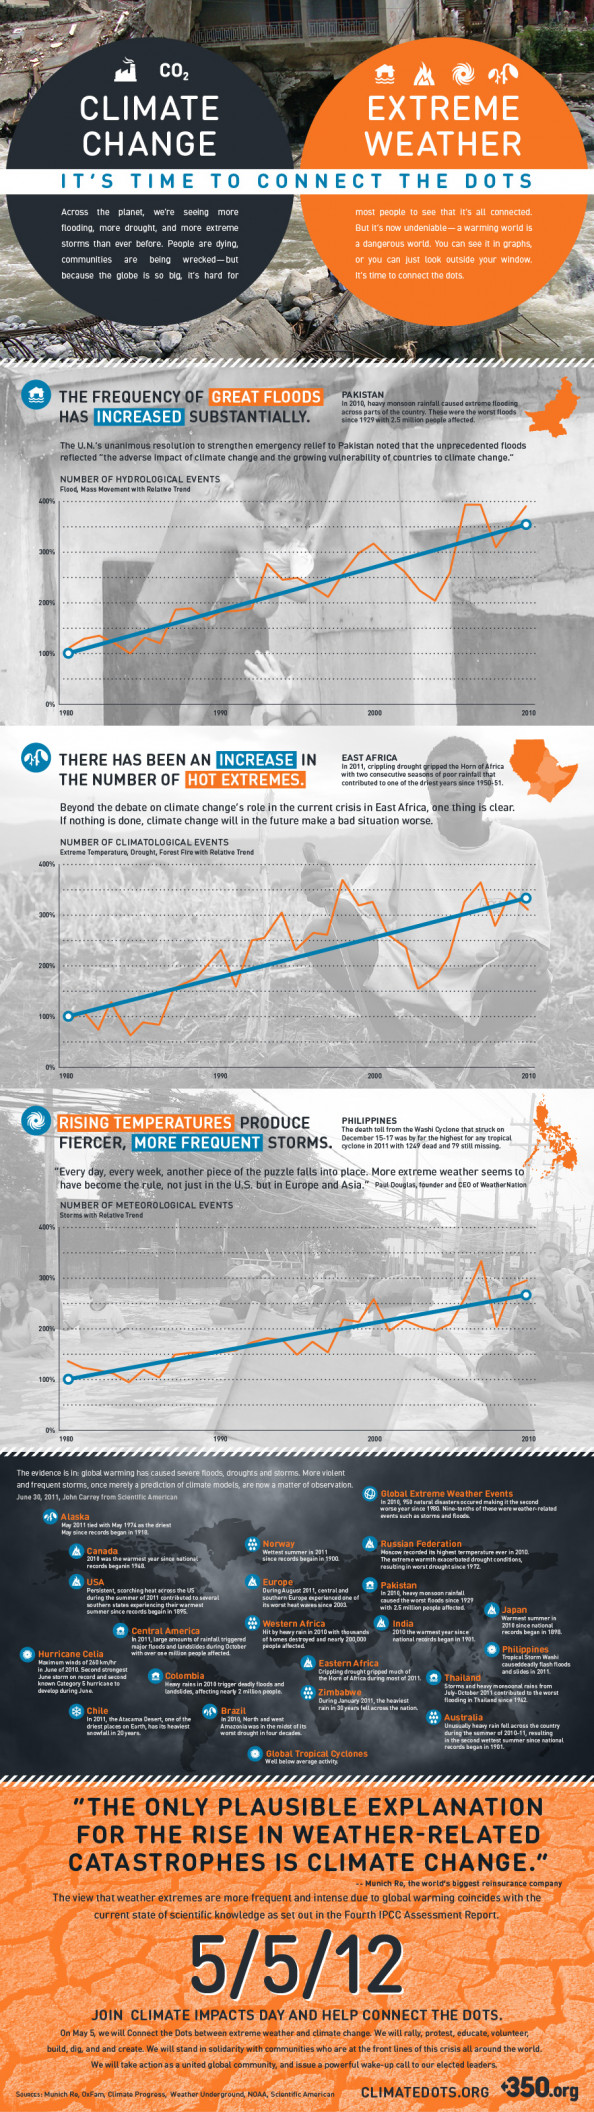 Climate Change Extreme Weather Infographic